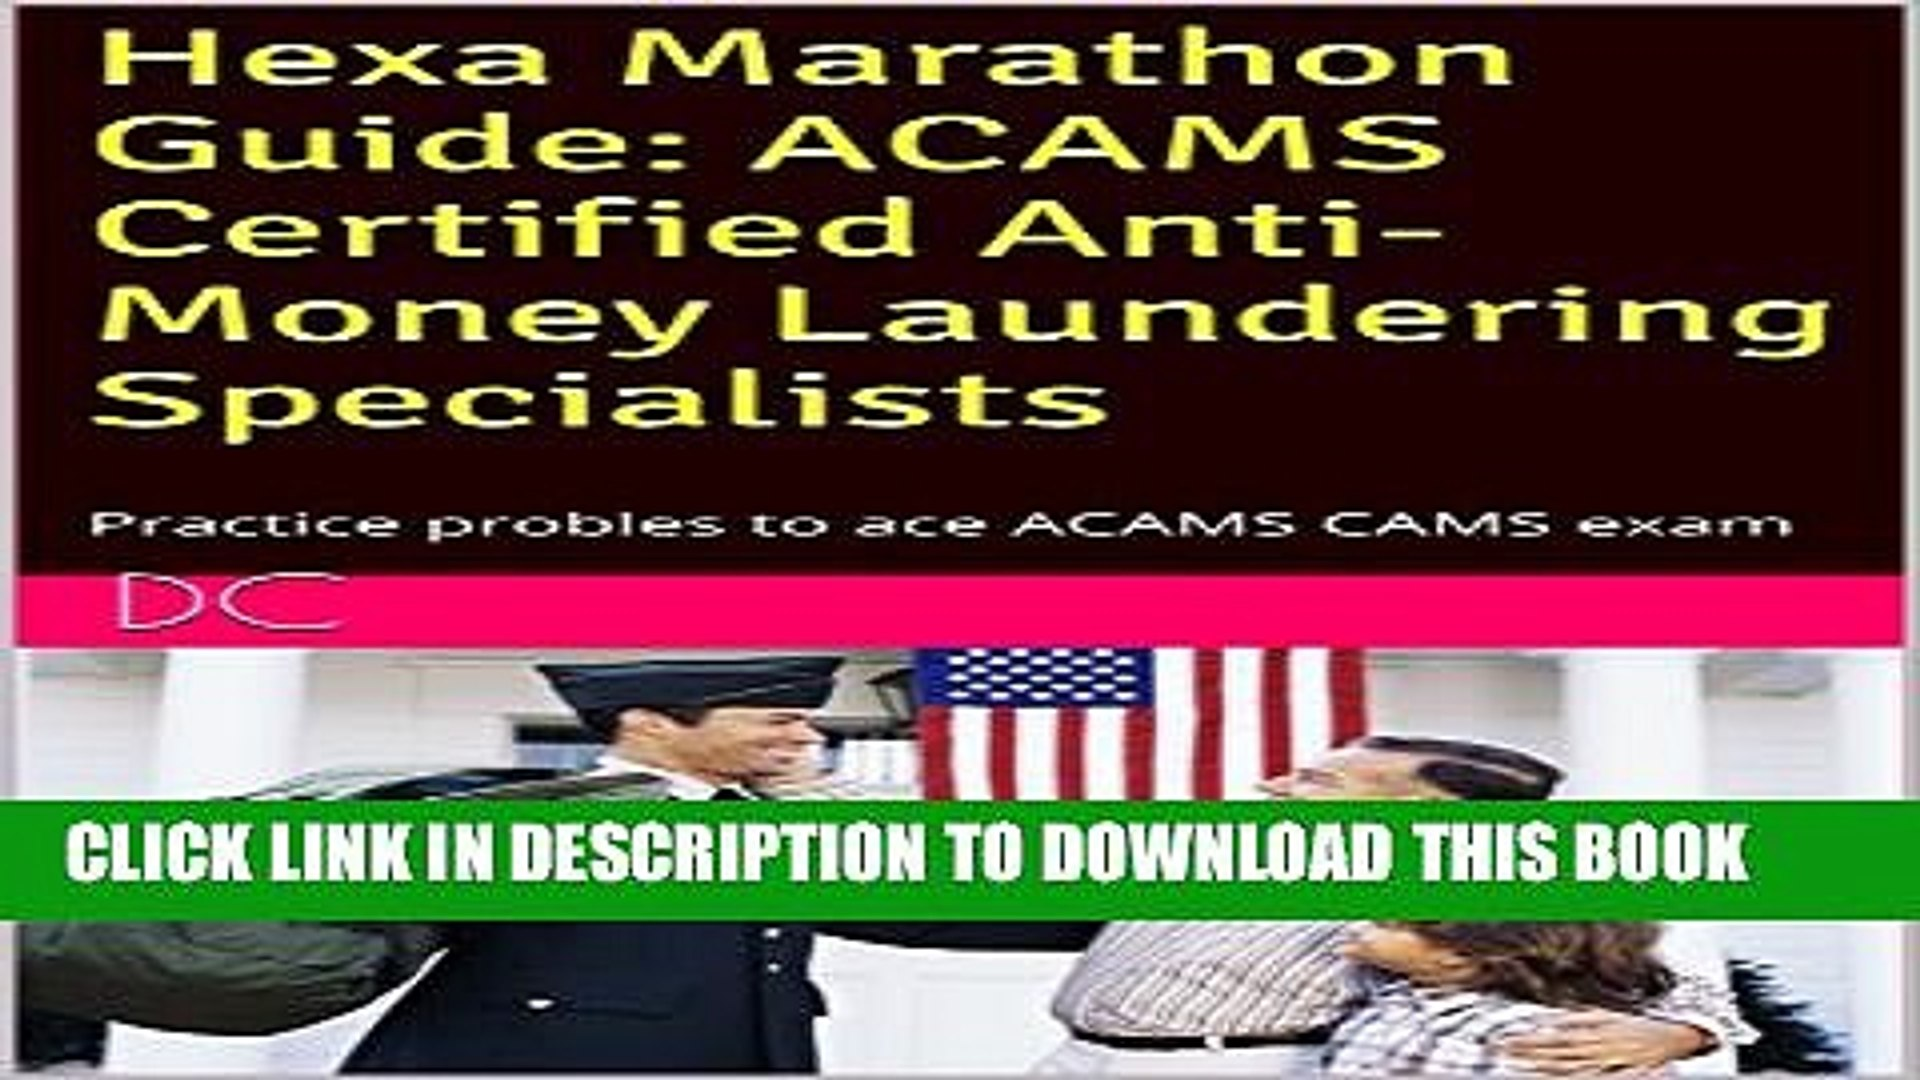 [PDF] Hexa Marathon Guide: ACAMS Certified Anti-Money Laundering  Specialists: Practice probles to